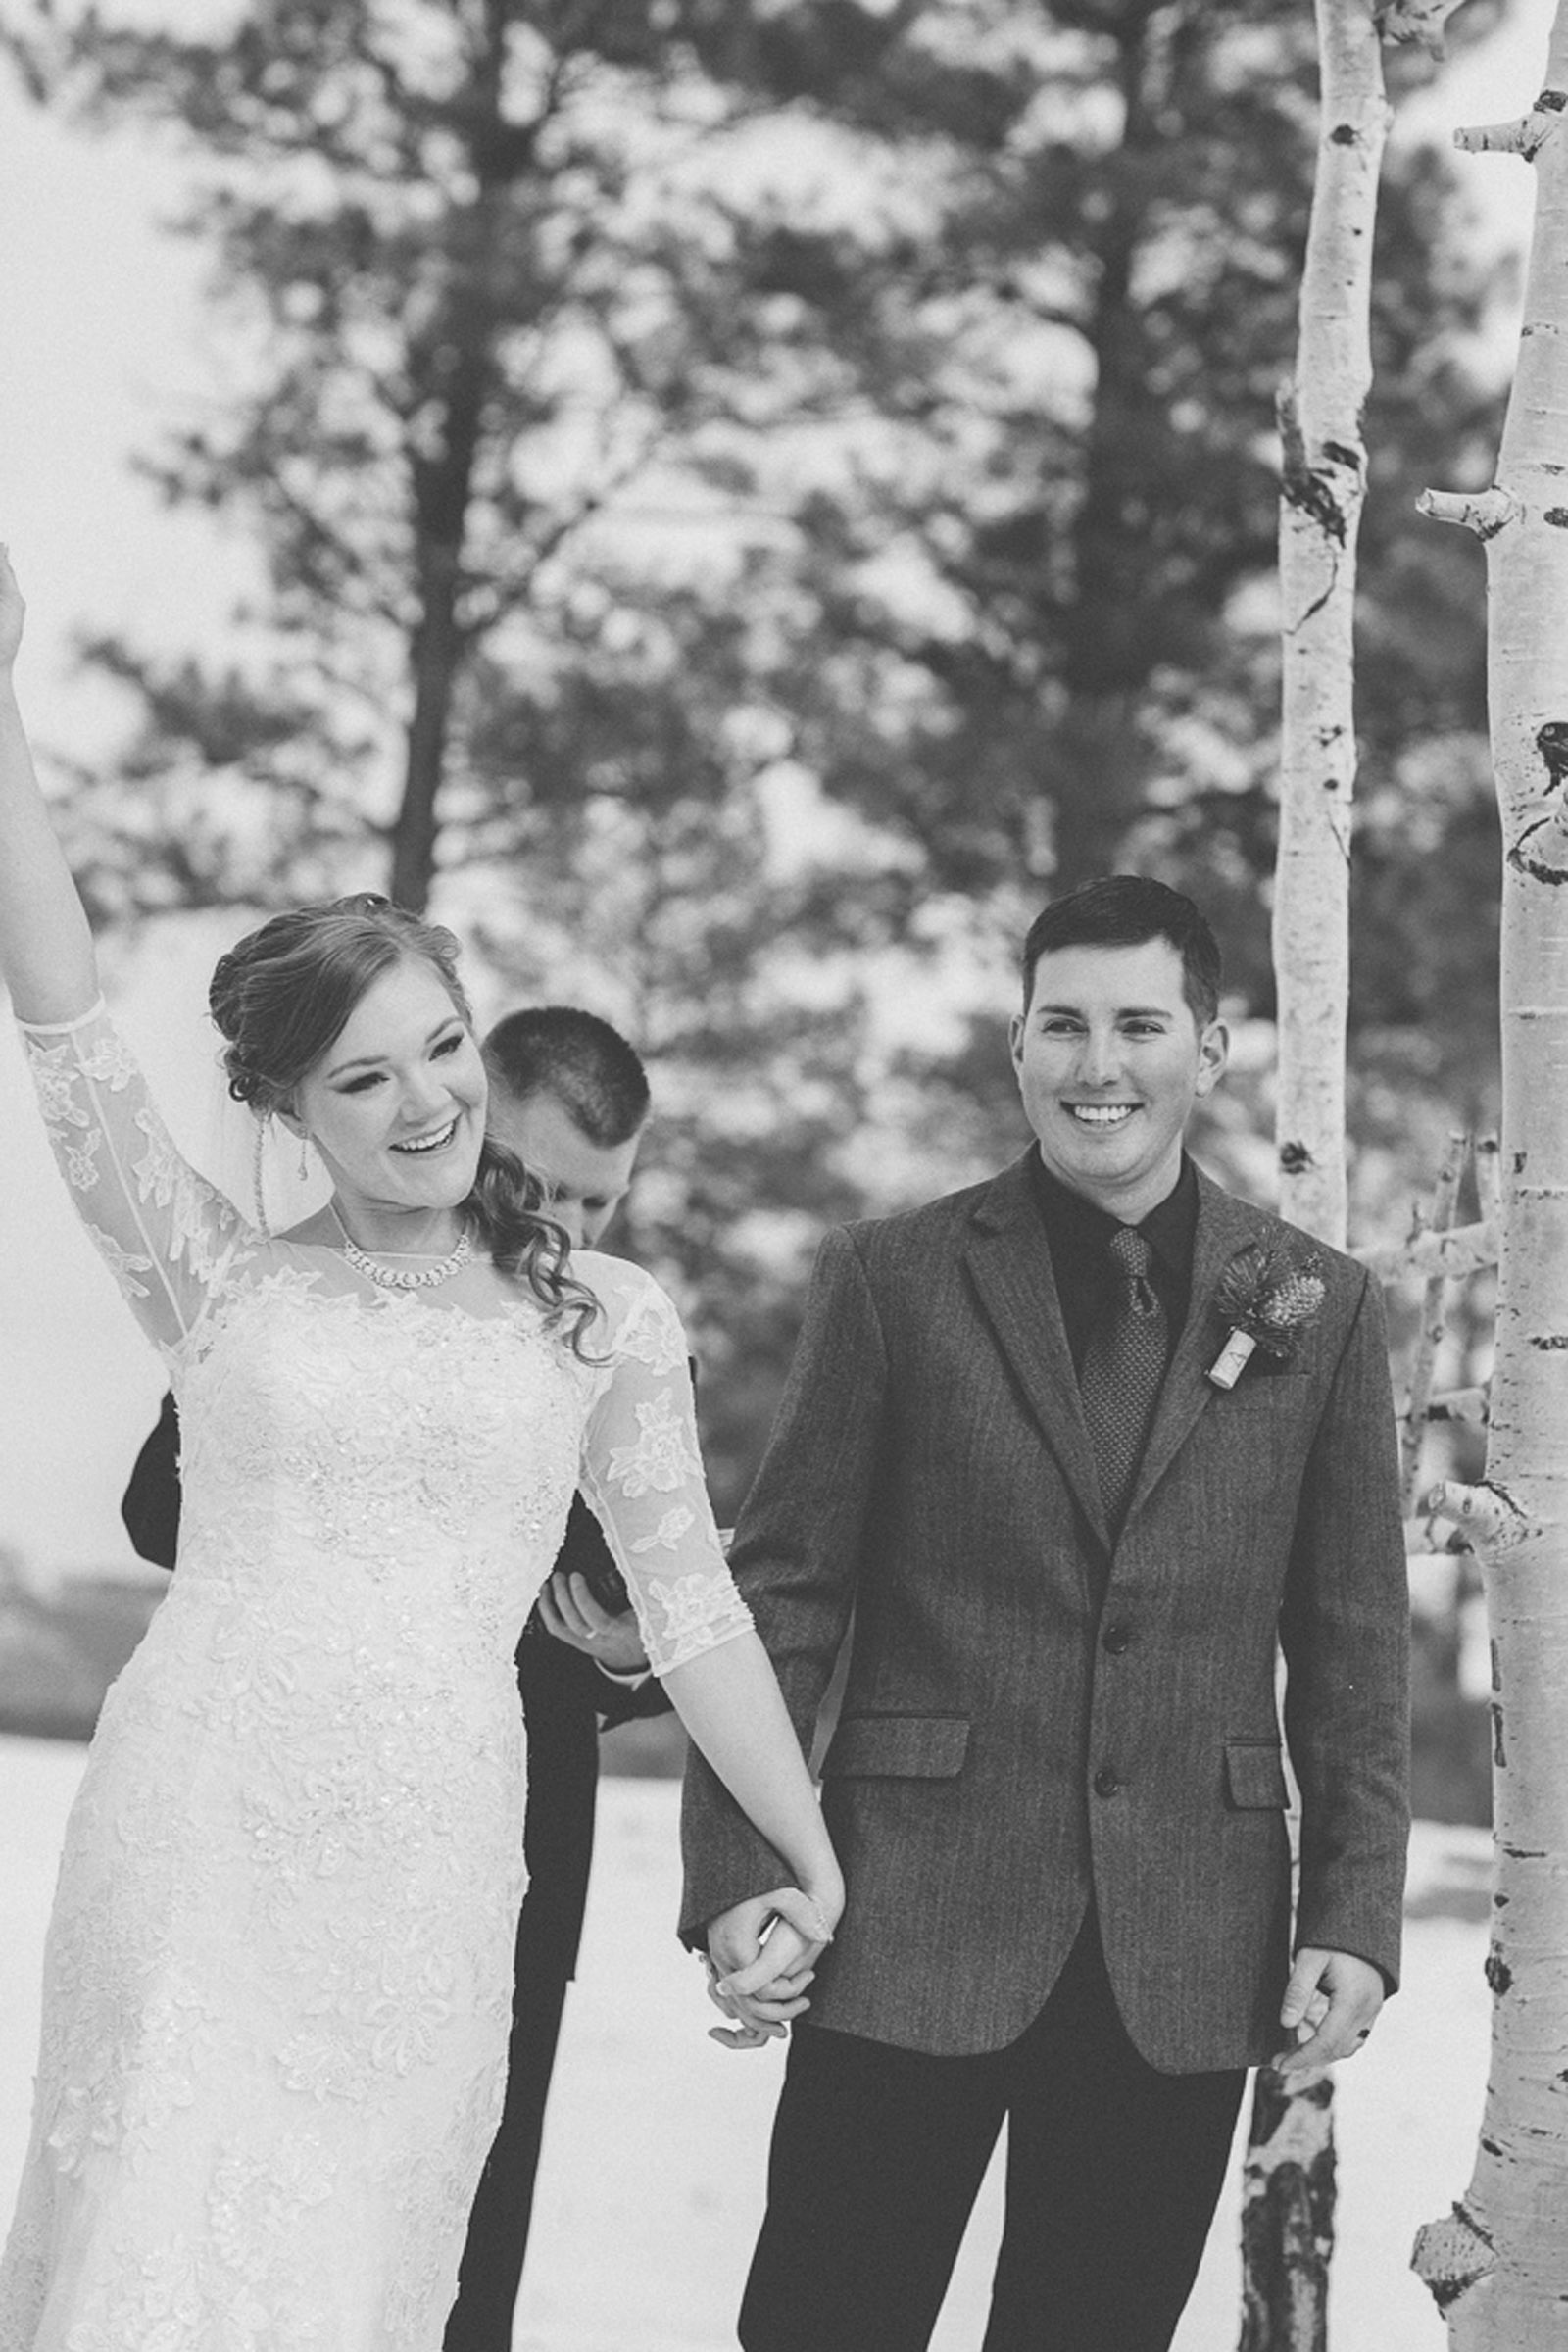 127-wedding-ceremony-in-pagosa-springs-wedding-photographer-snow-winter-wedding